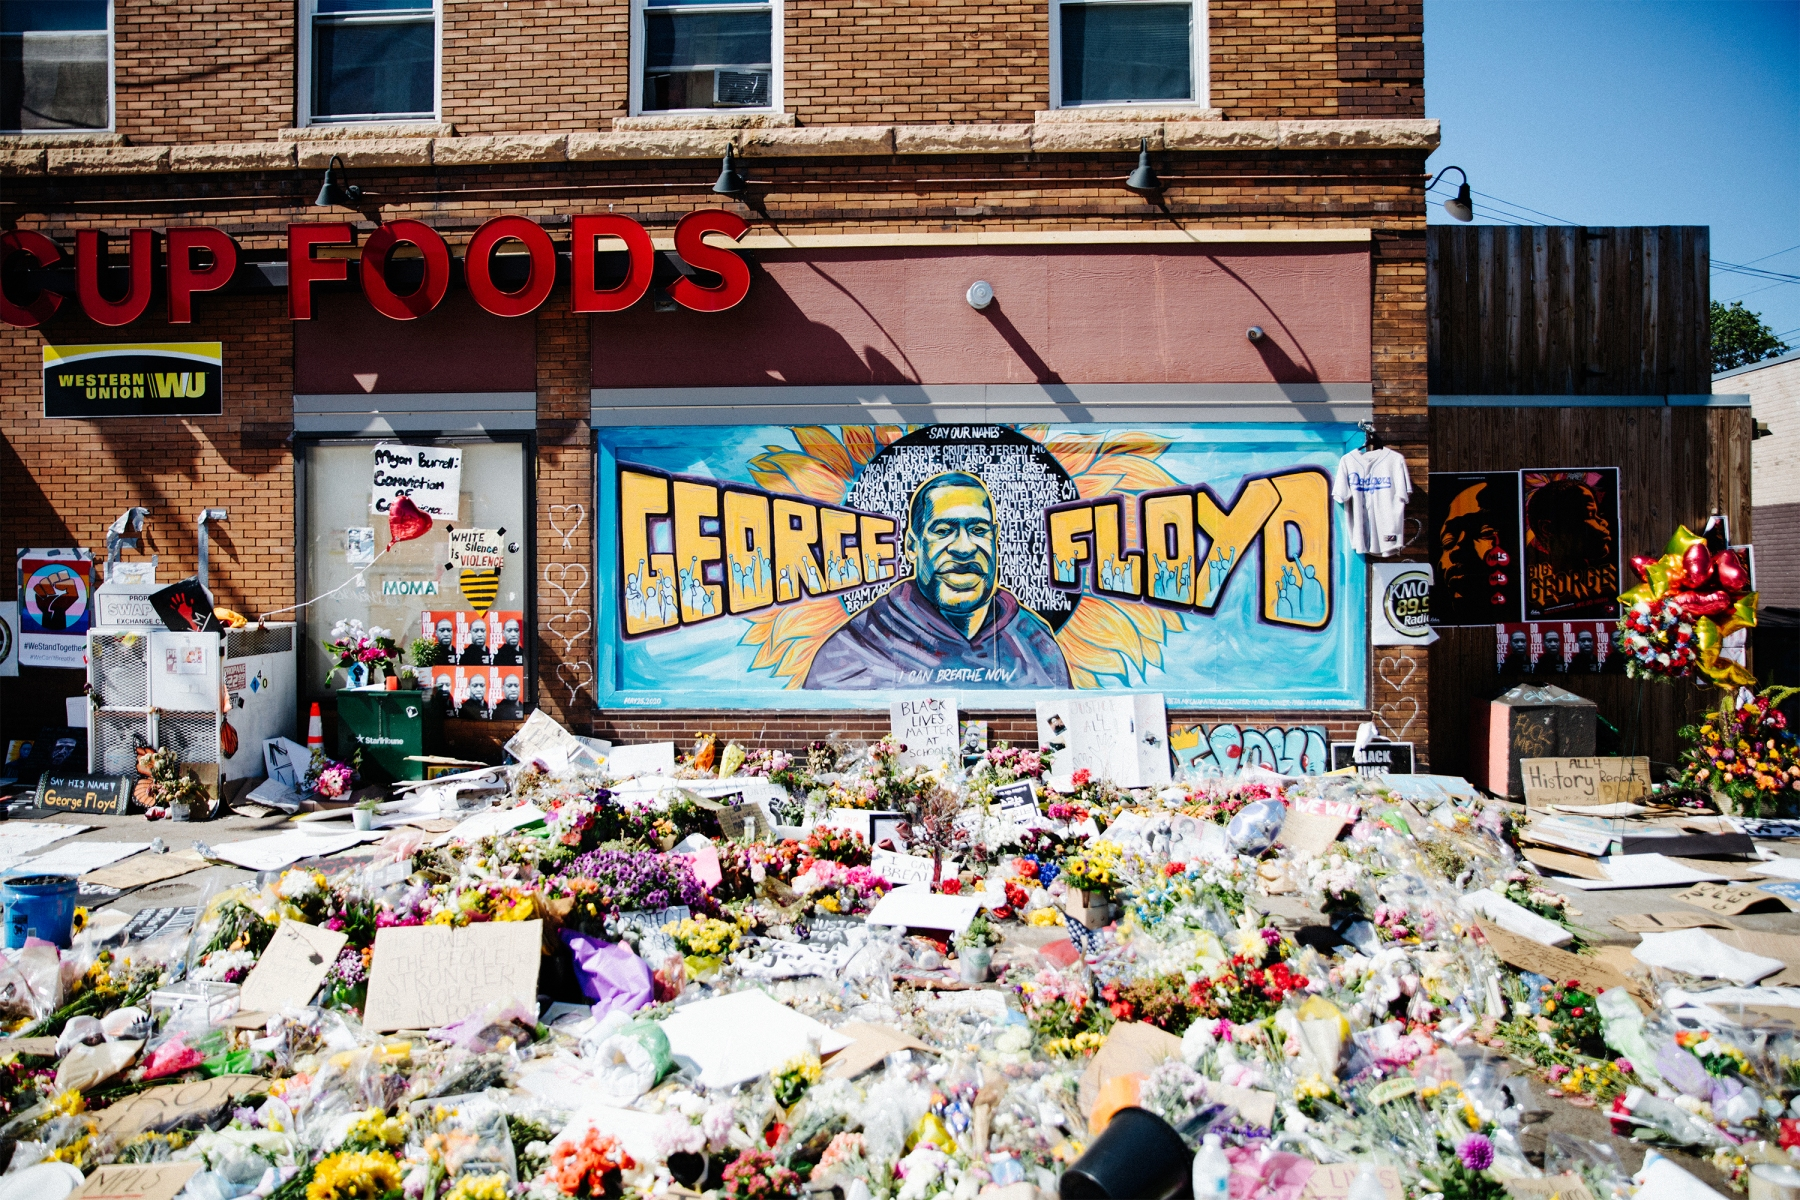 Dozens of flower bouquets in front of the George Floyd memorial